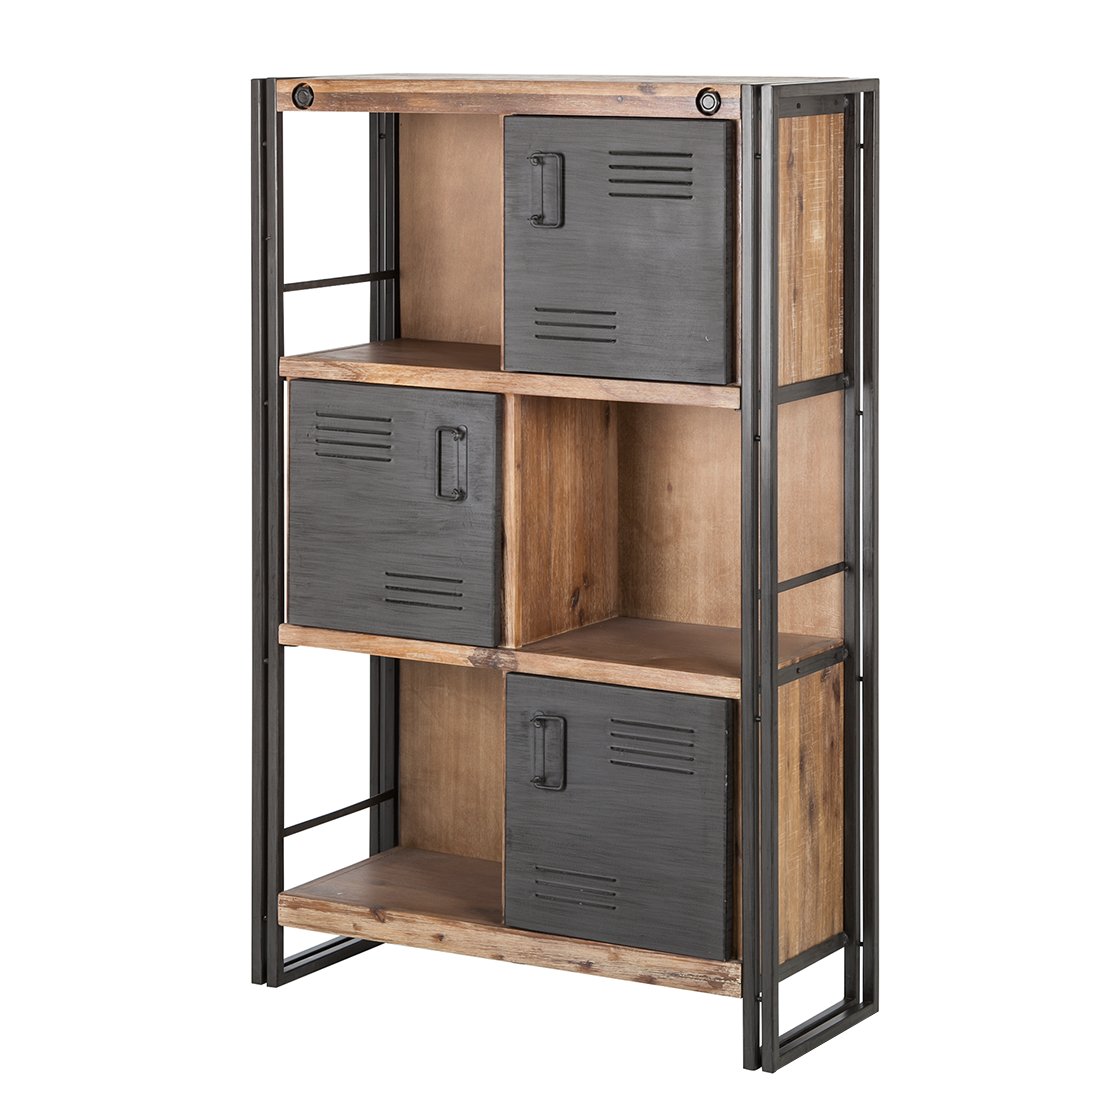 hochkommode 3 t ren akazie holz metall highboard regal. Black Bedroom Furniture Sets. Home Design Ideas